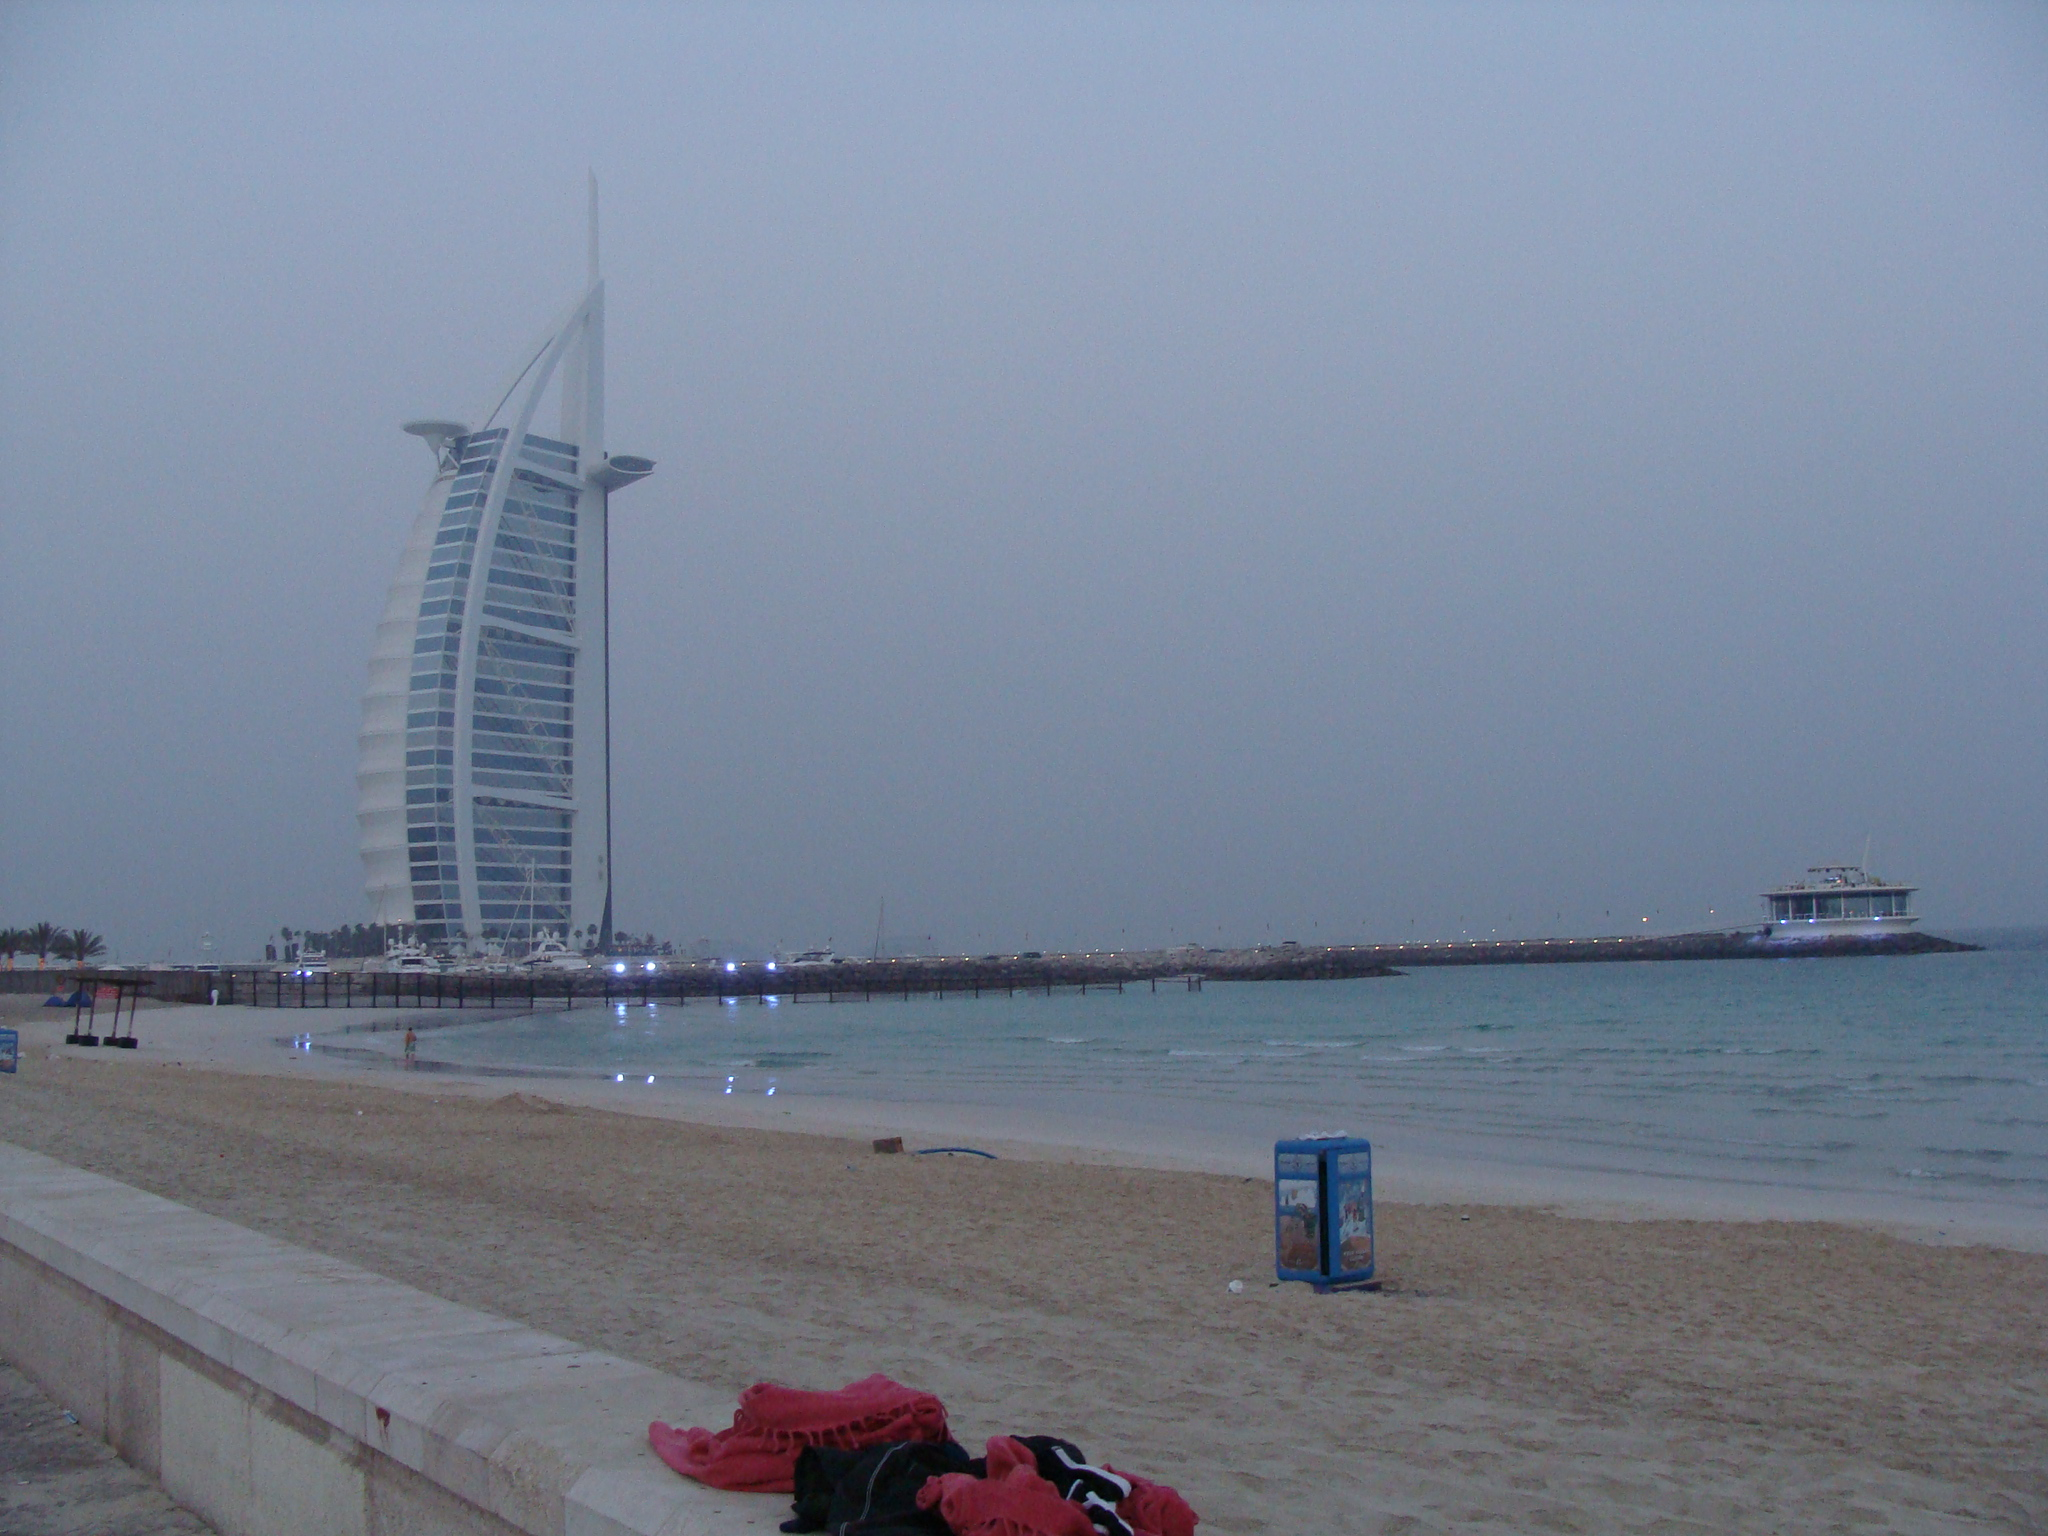 [PH] Burj al-Arab, Dubai, UAE, 20080418